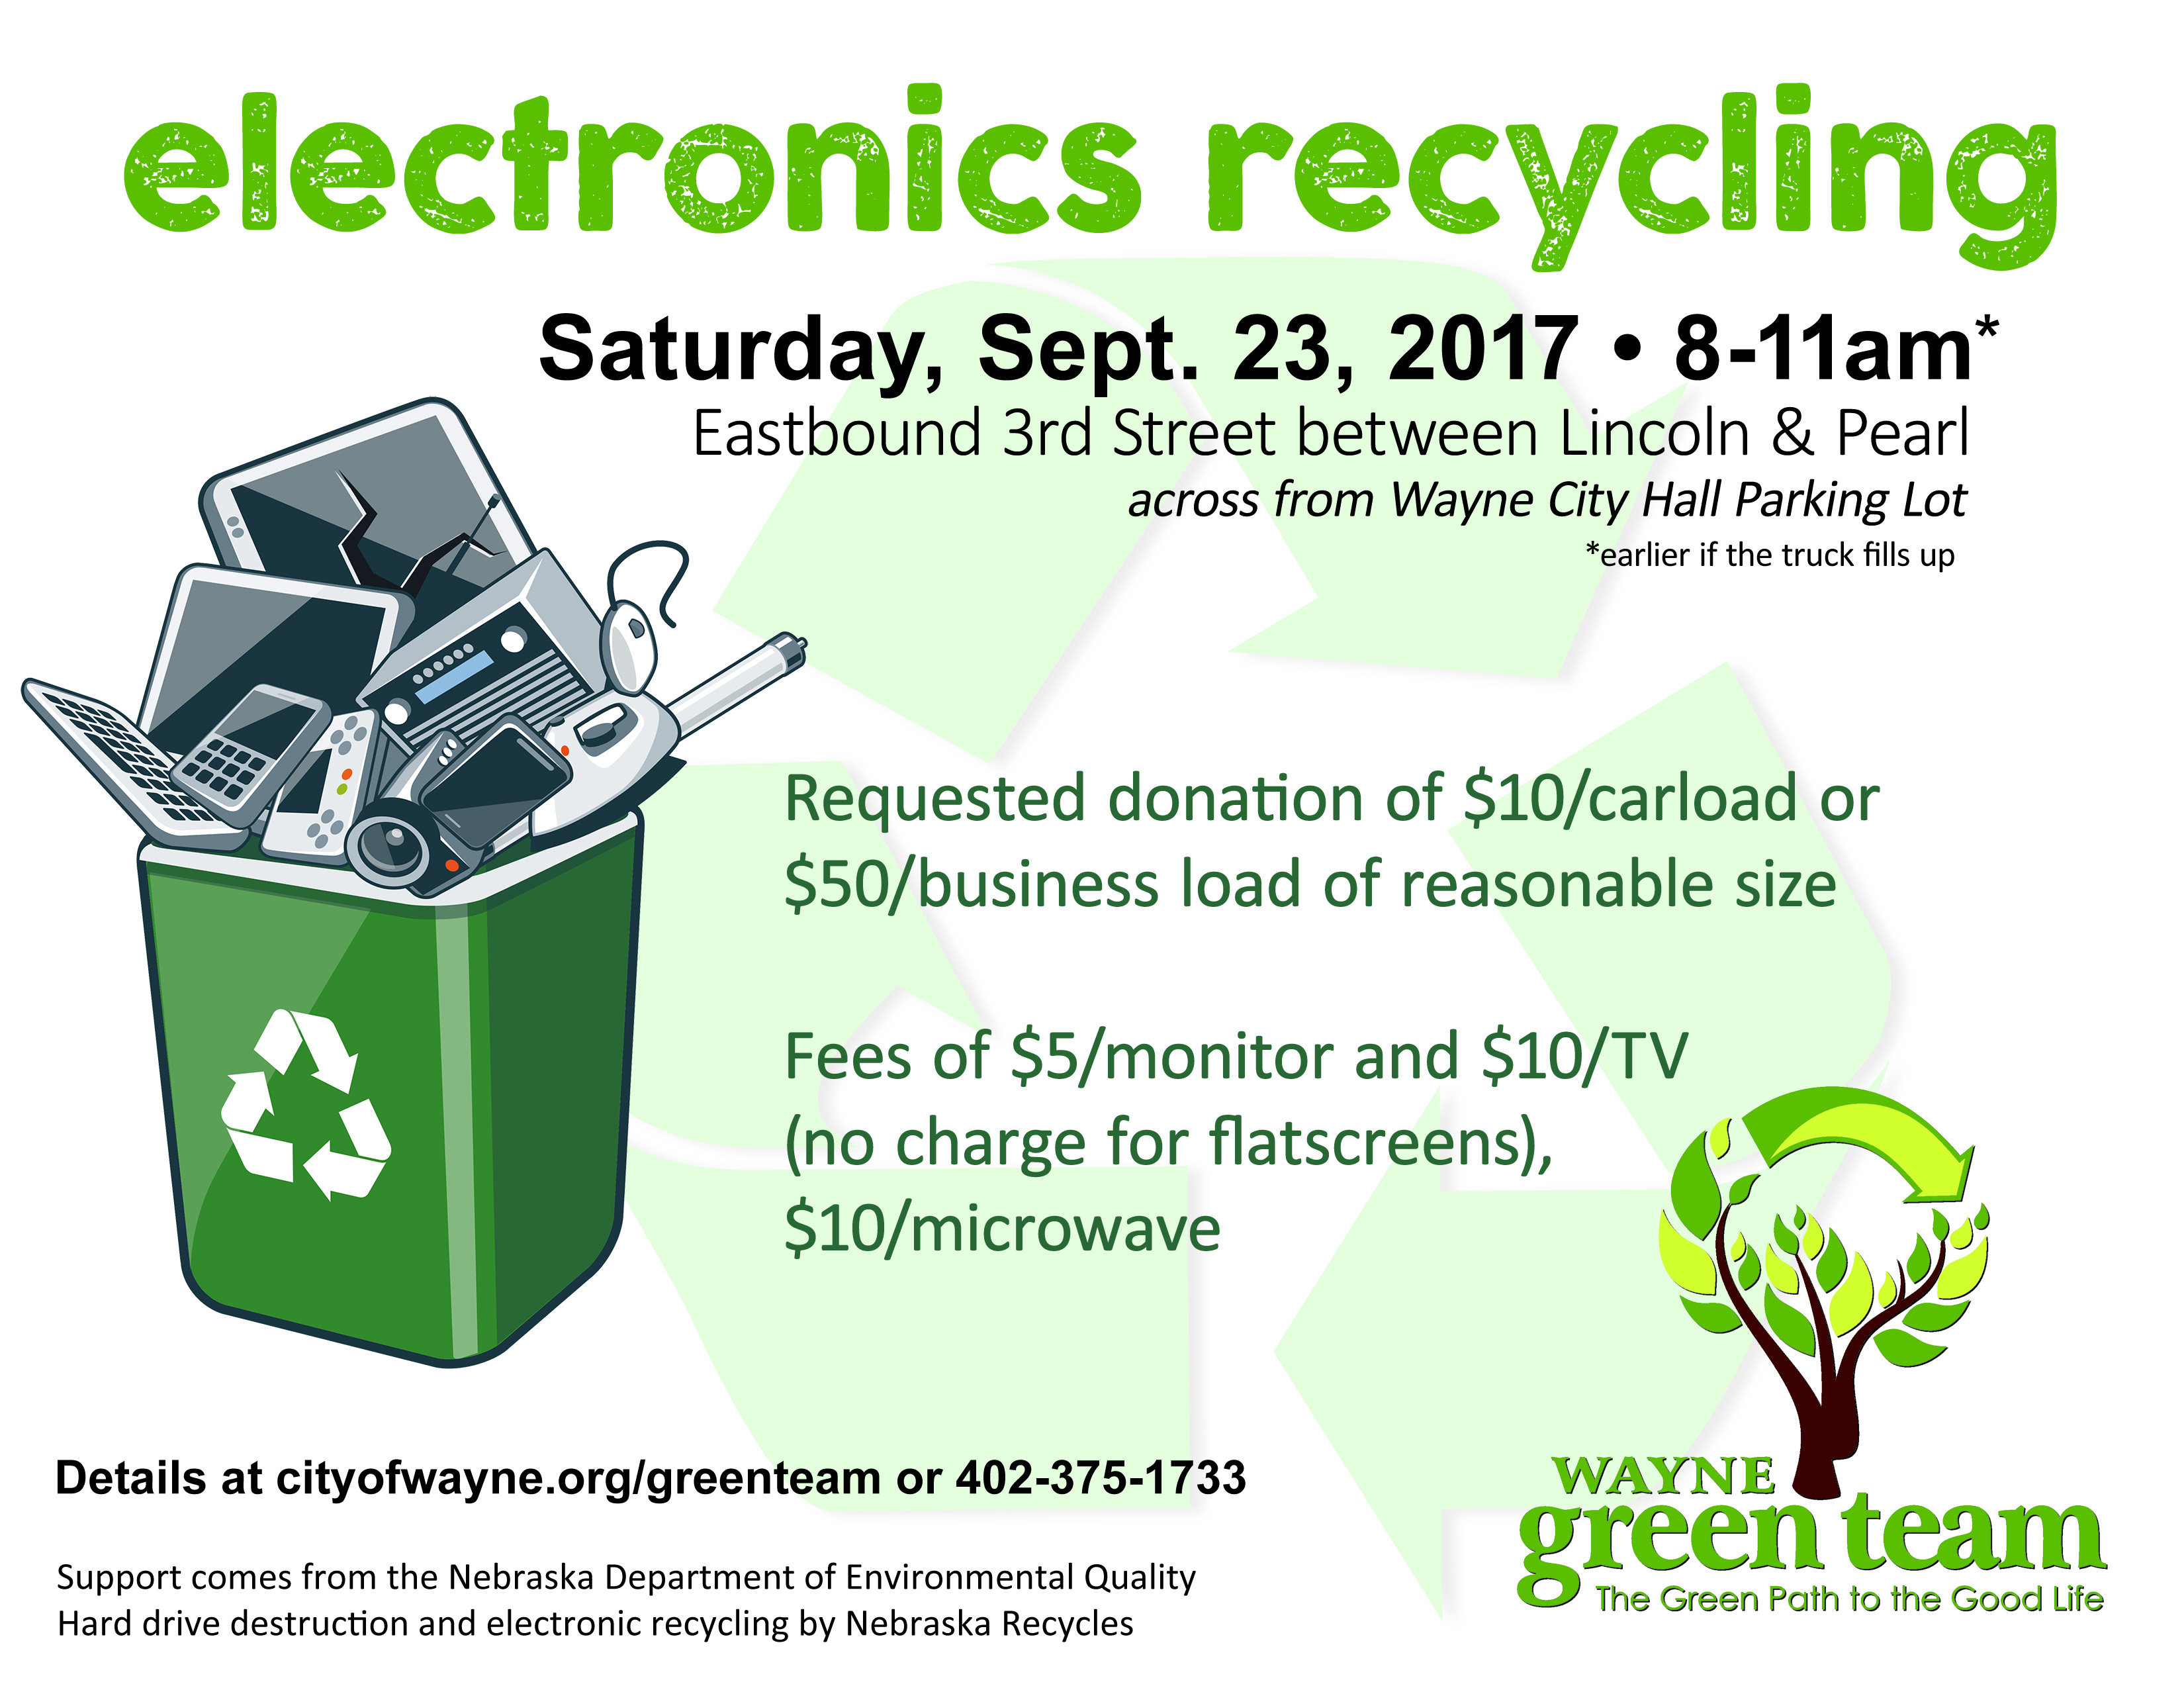 2017 recycling event